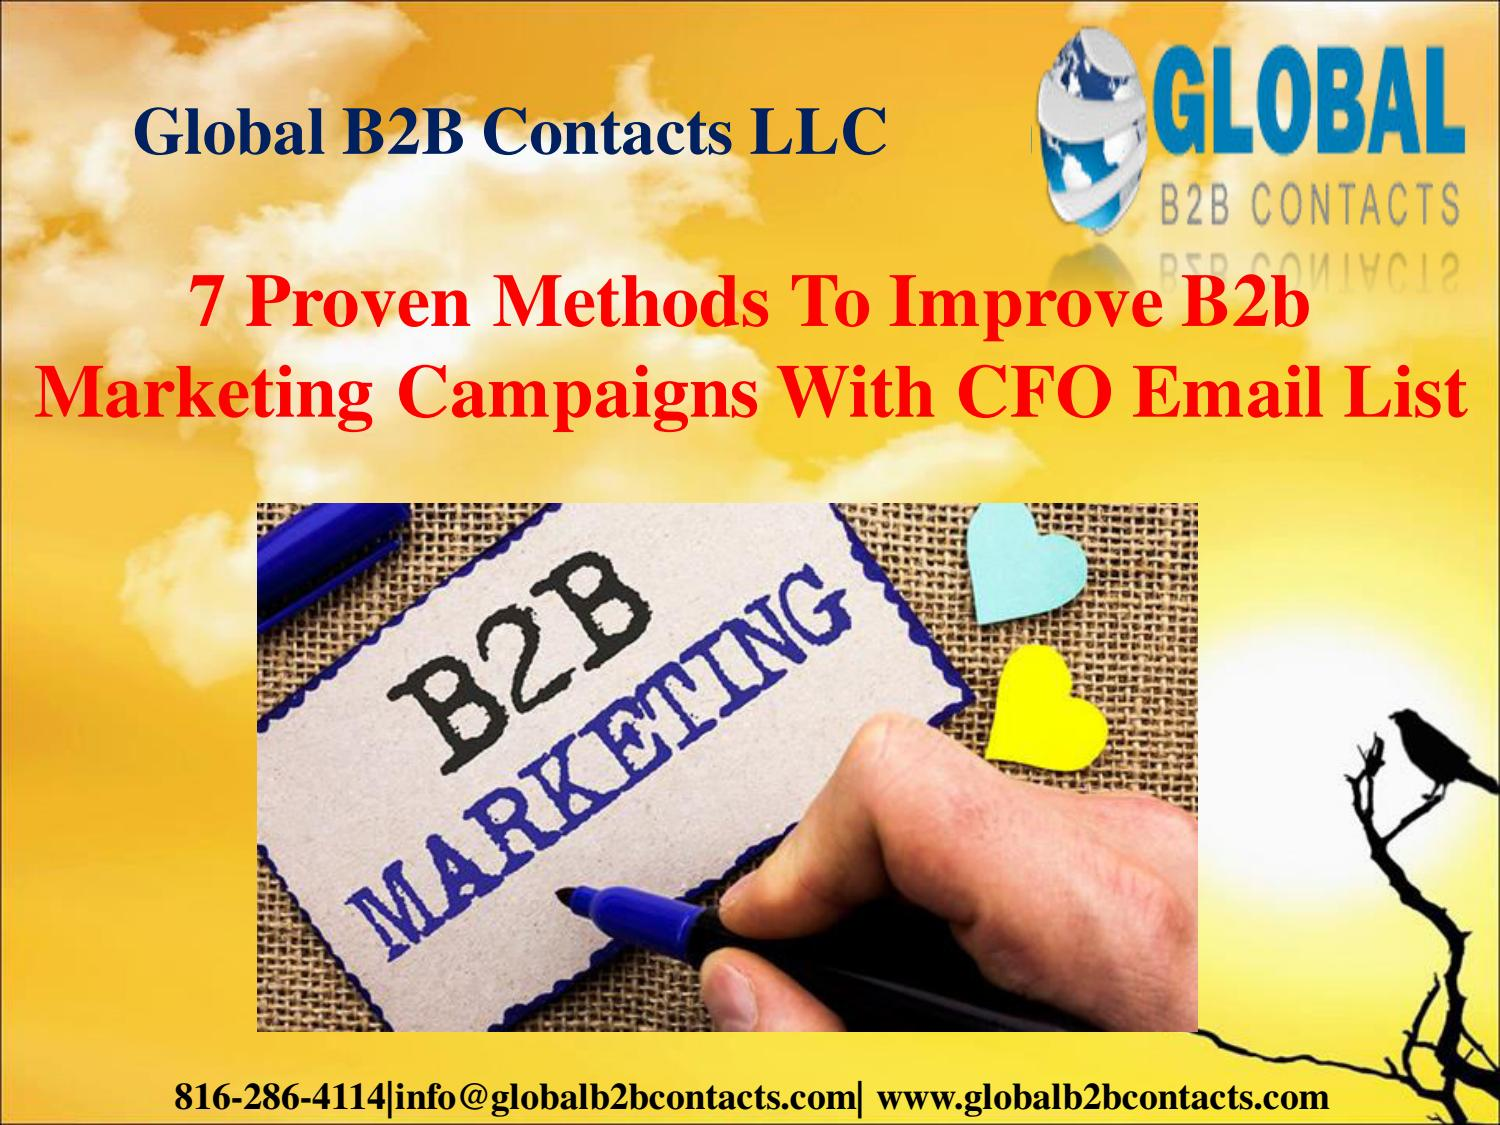 7 Proven Methods To Improve B2b Marketing Campaigns With CFO Email